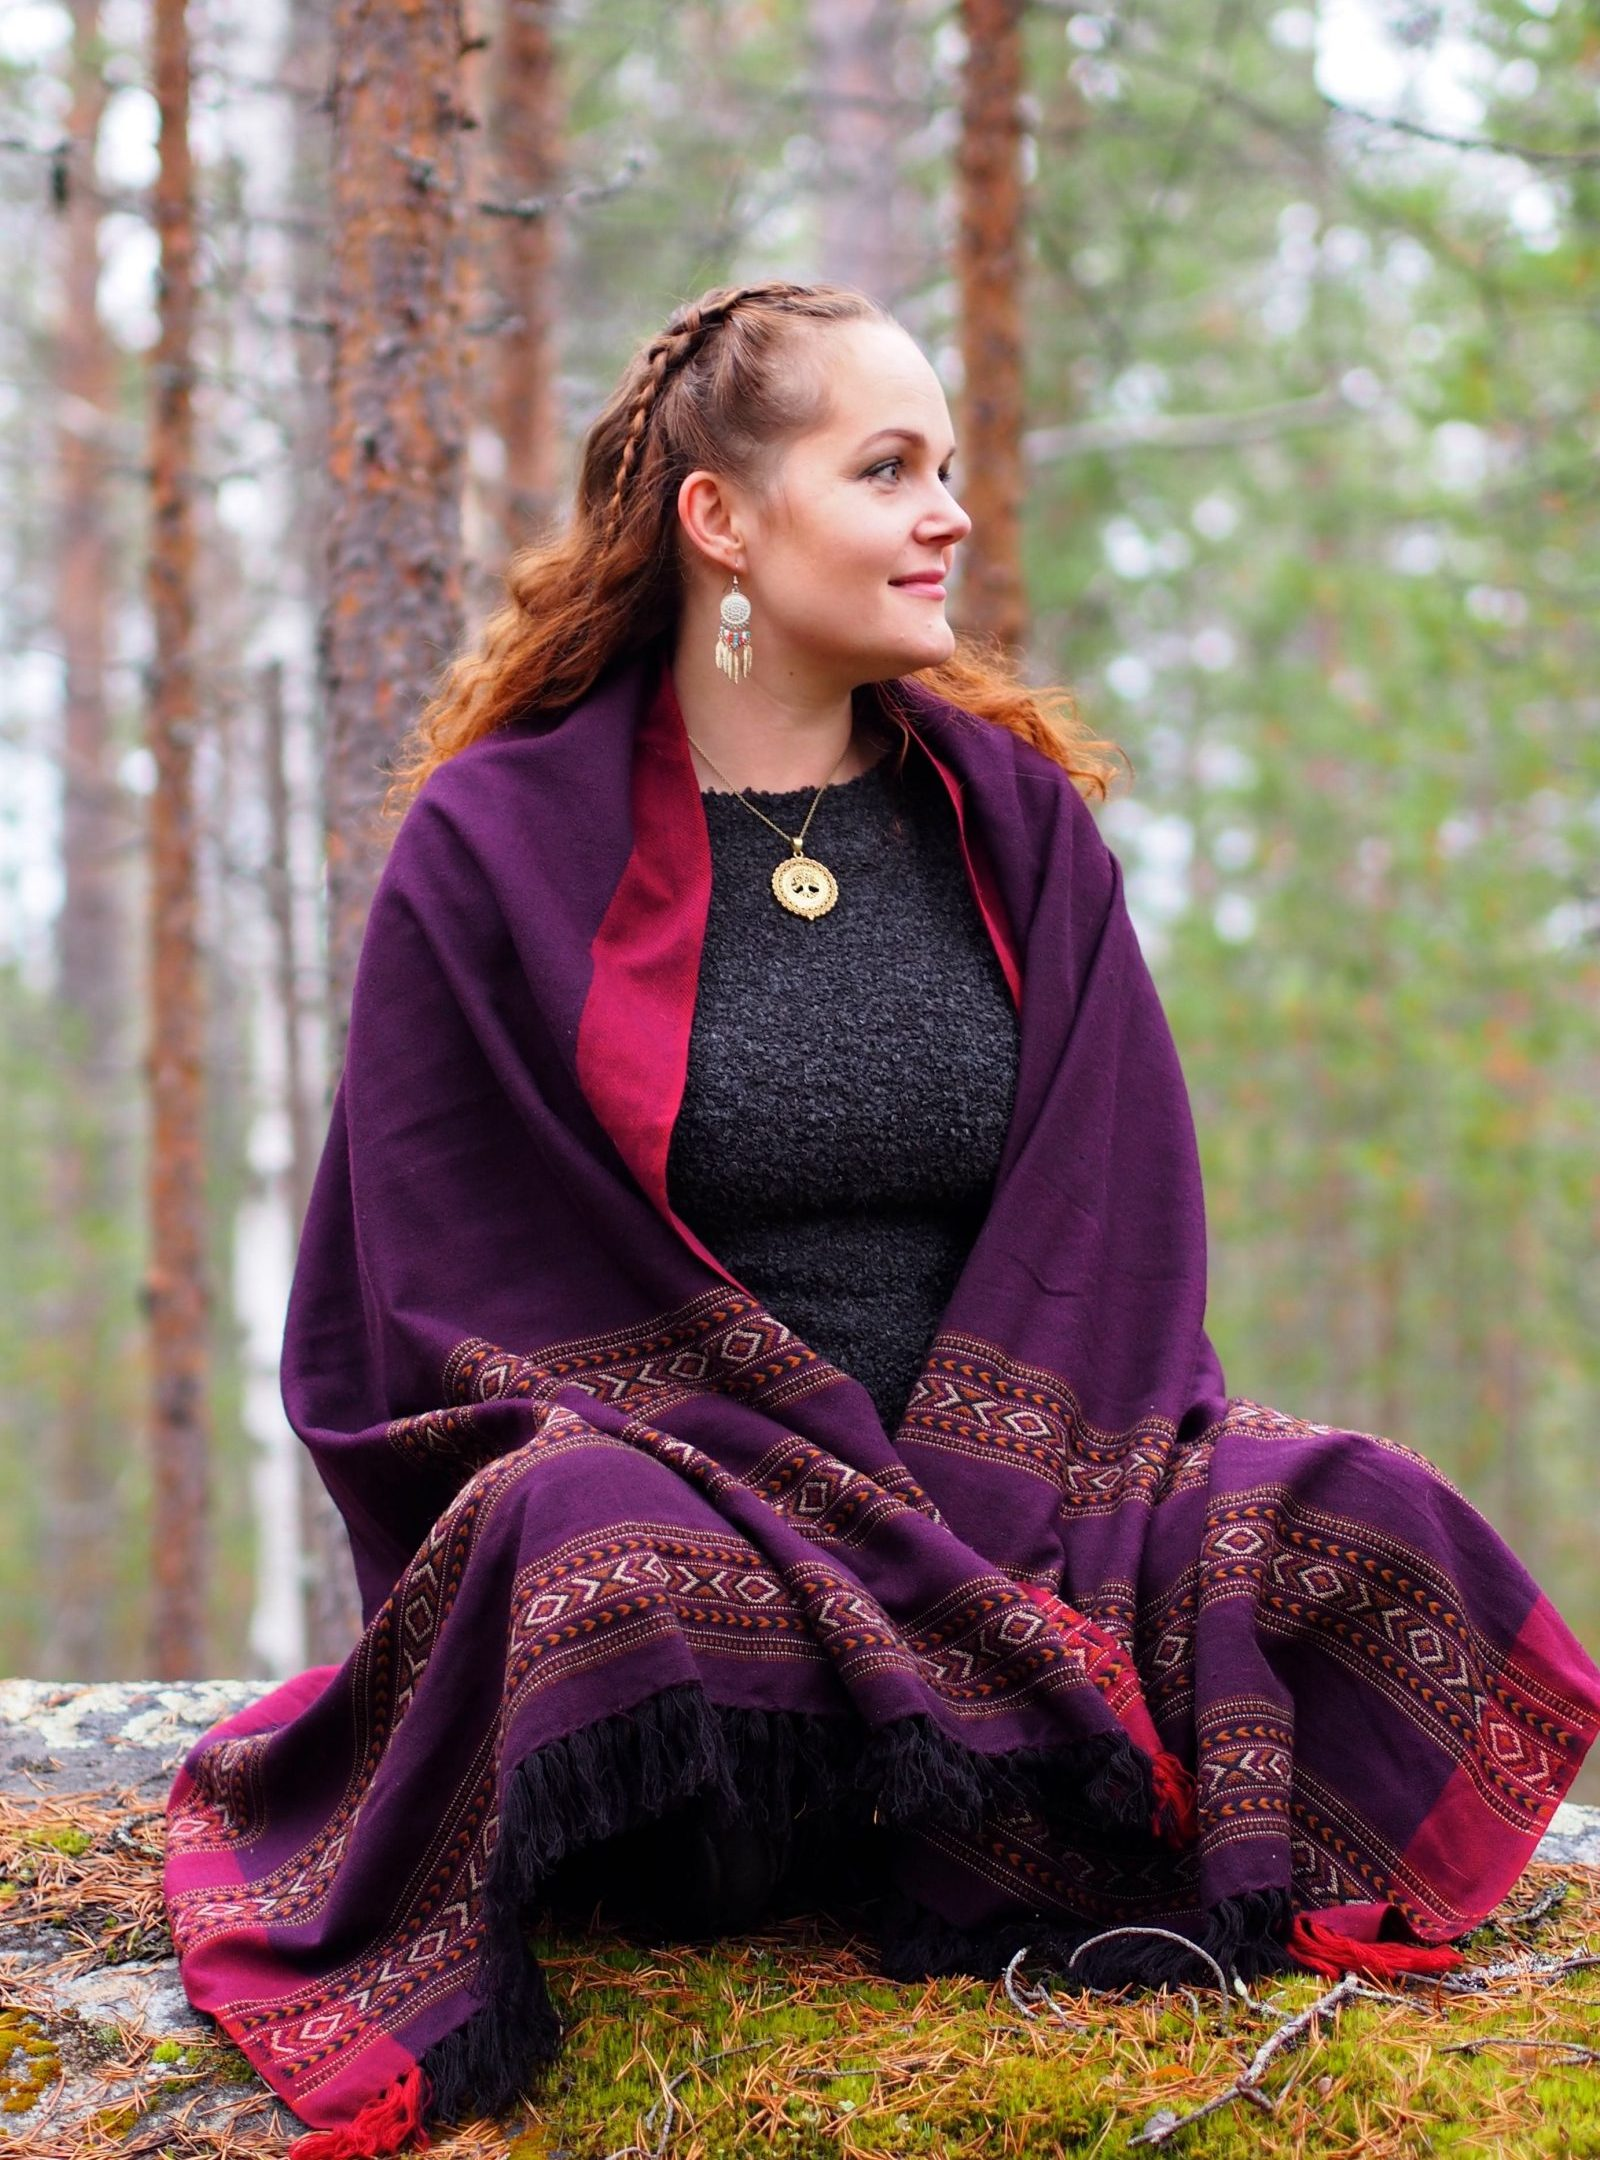 Sari Leinonen in Kemijärvi | Photo by Venla